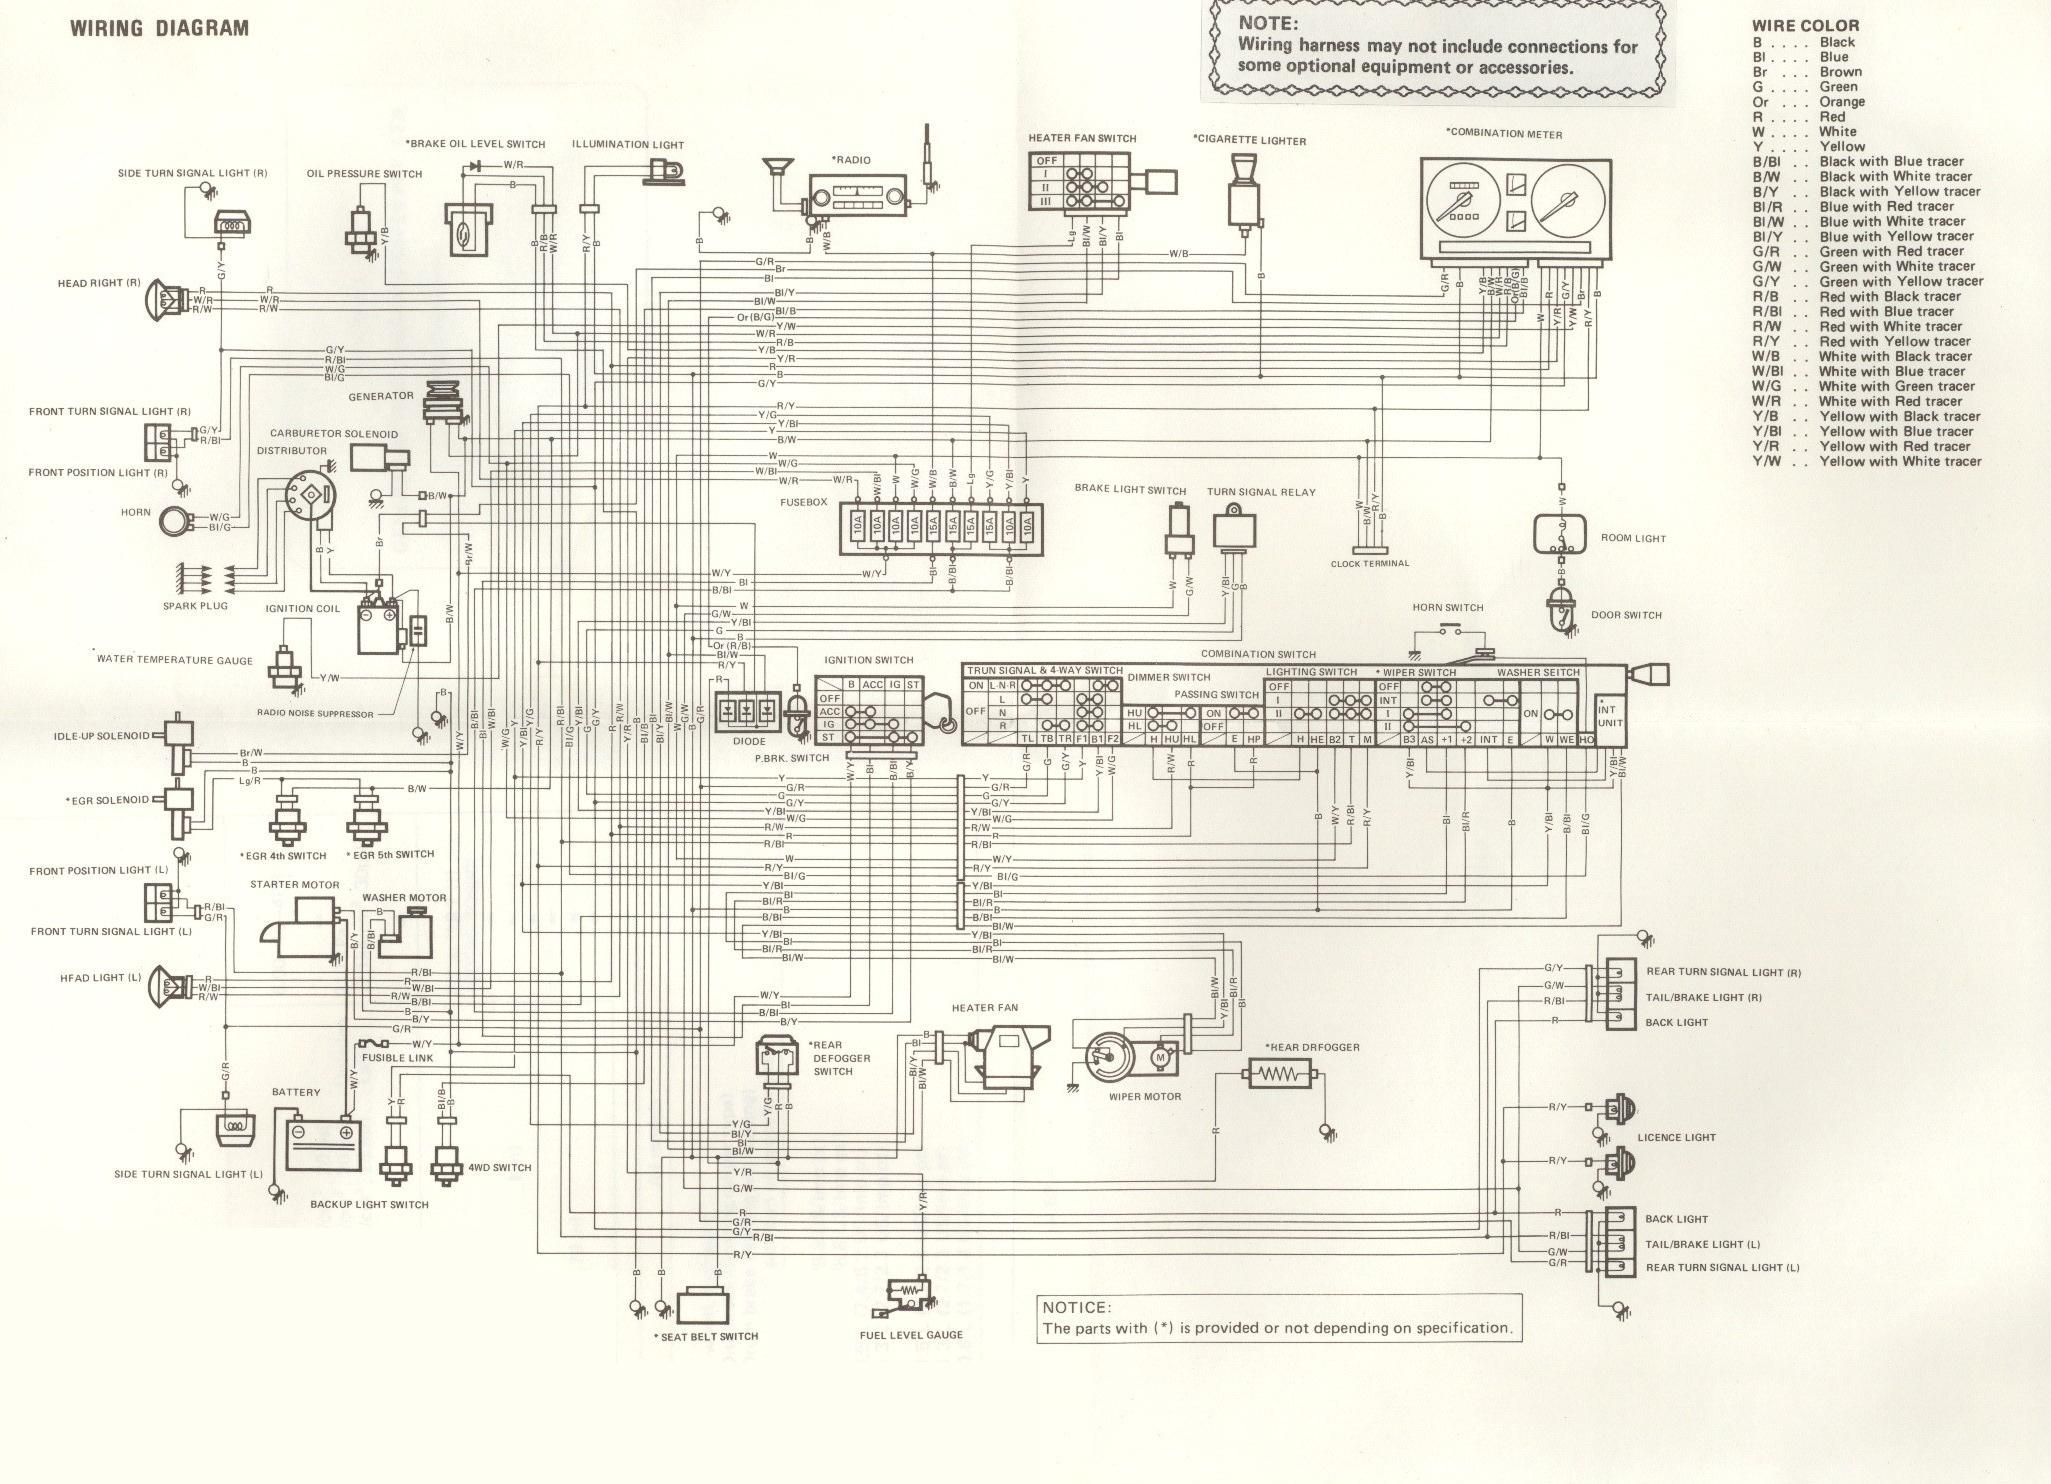 Maruti Suzuki Swift 1 3 Wiring Diagram And Facybulka Me New ... on car schematics, chevy truck diagrams, dodge ram vacuum diagrams, car motors diagrams, 7.3 ford diesel diagrams, custom stereo diagrams, car parts diagrams, factory car stereo diagrams, car electrical, car starting system, battery diagrams, autozone repair diagrams, car door lock diagram, car exhaust, club car manuals and diagrams, car vacuum diagrams, car battery, 3930 ford tractor parts diagrams, club car manual wire diagrams, pinout diagrams,